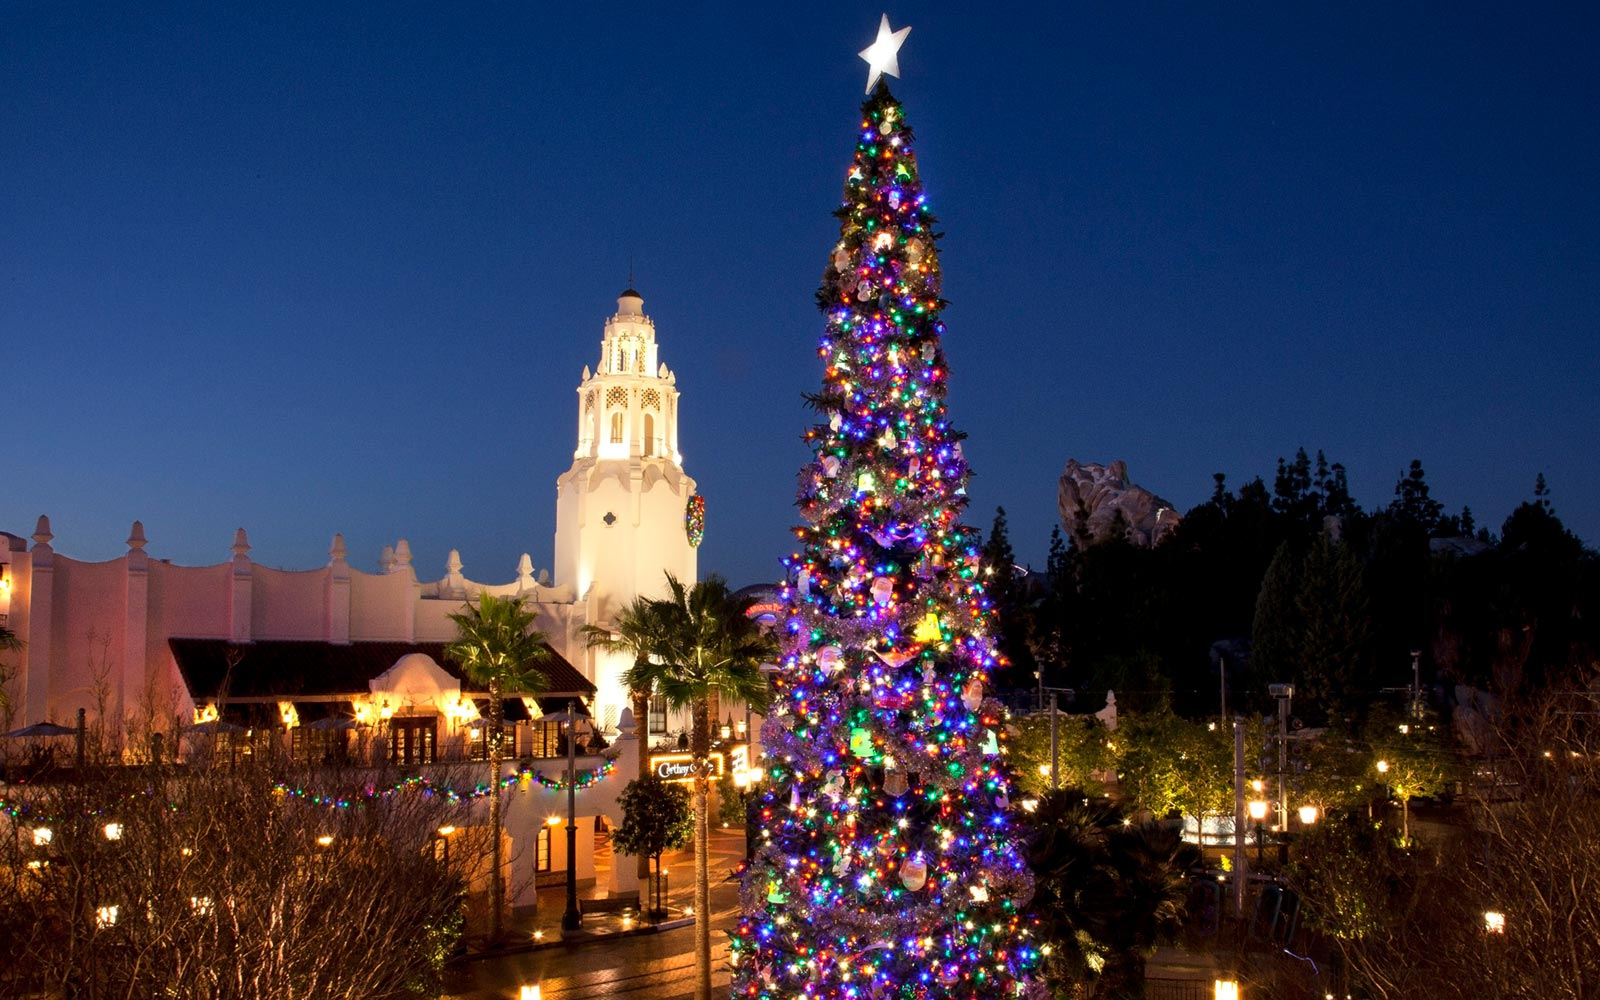 Christmas Tree Lights at Disneyland Resort